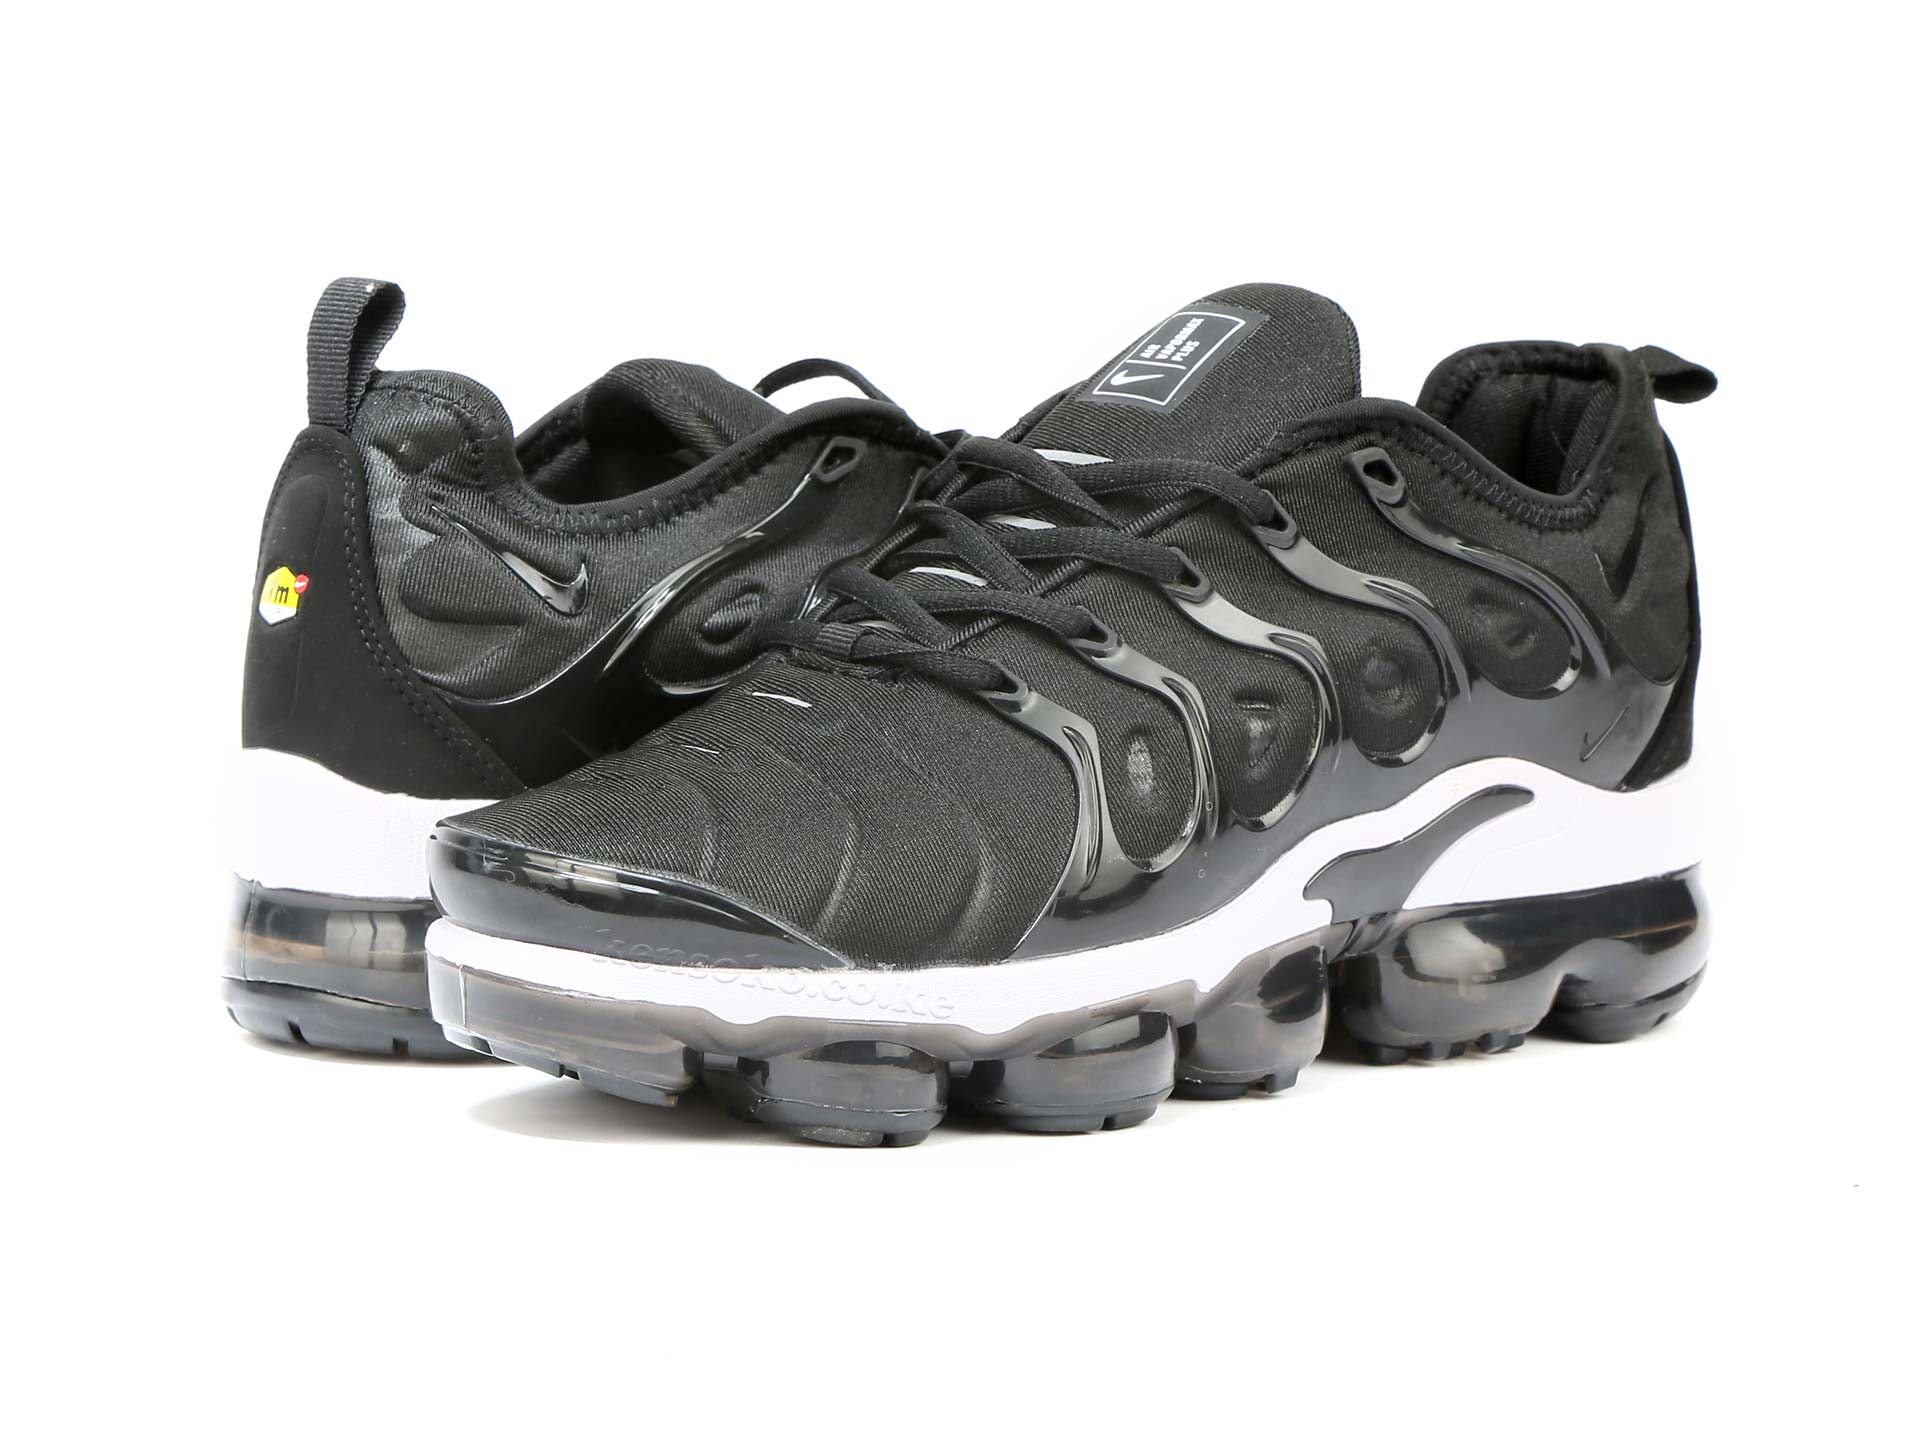 efe6be968f The Air Max Plus is synonymous with that Tn Air logo,